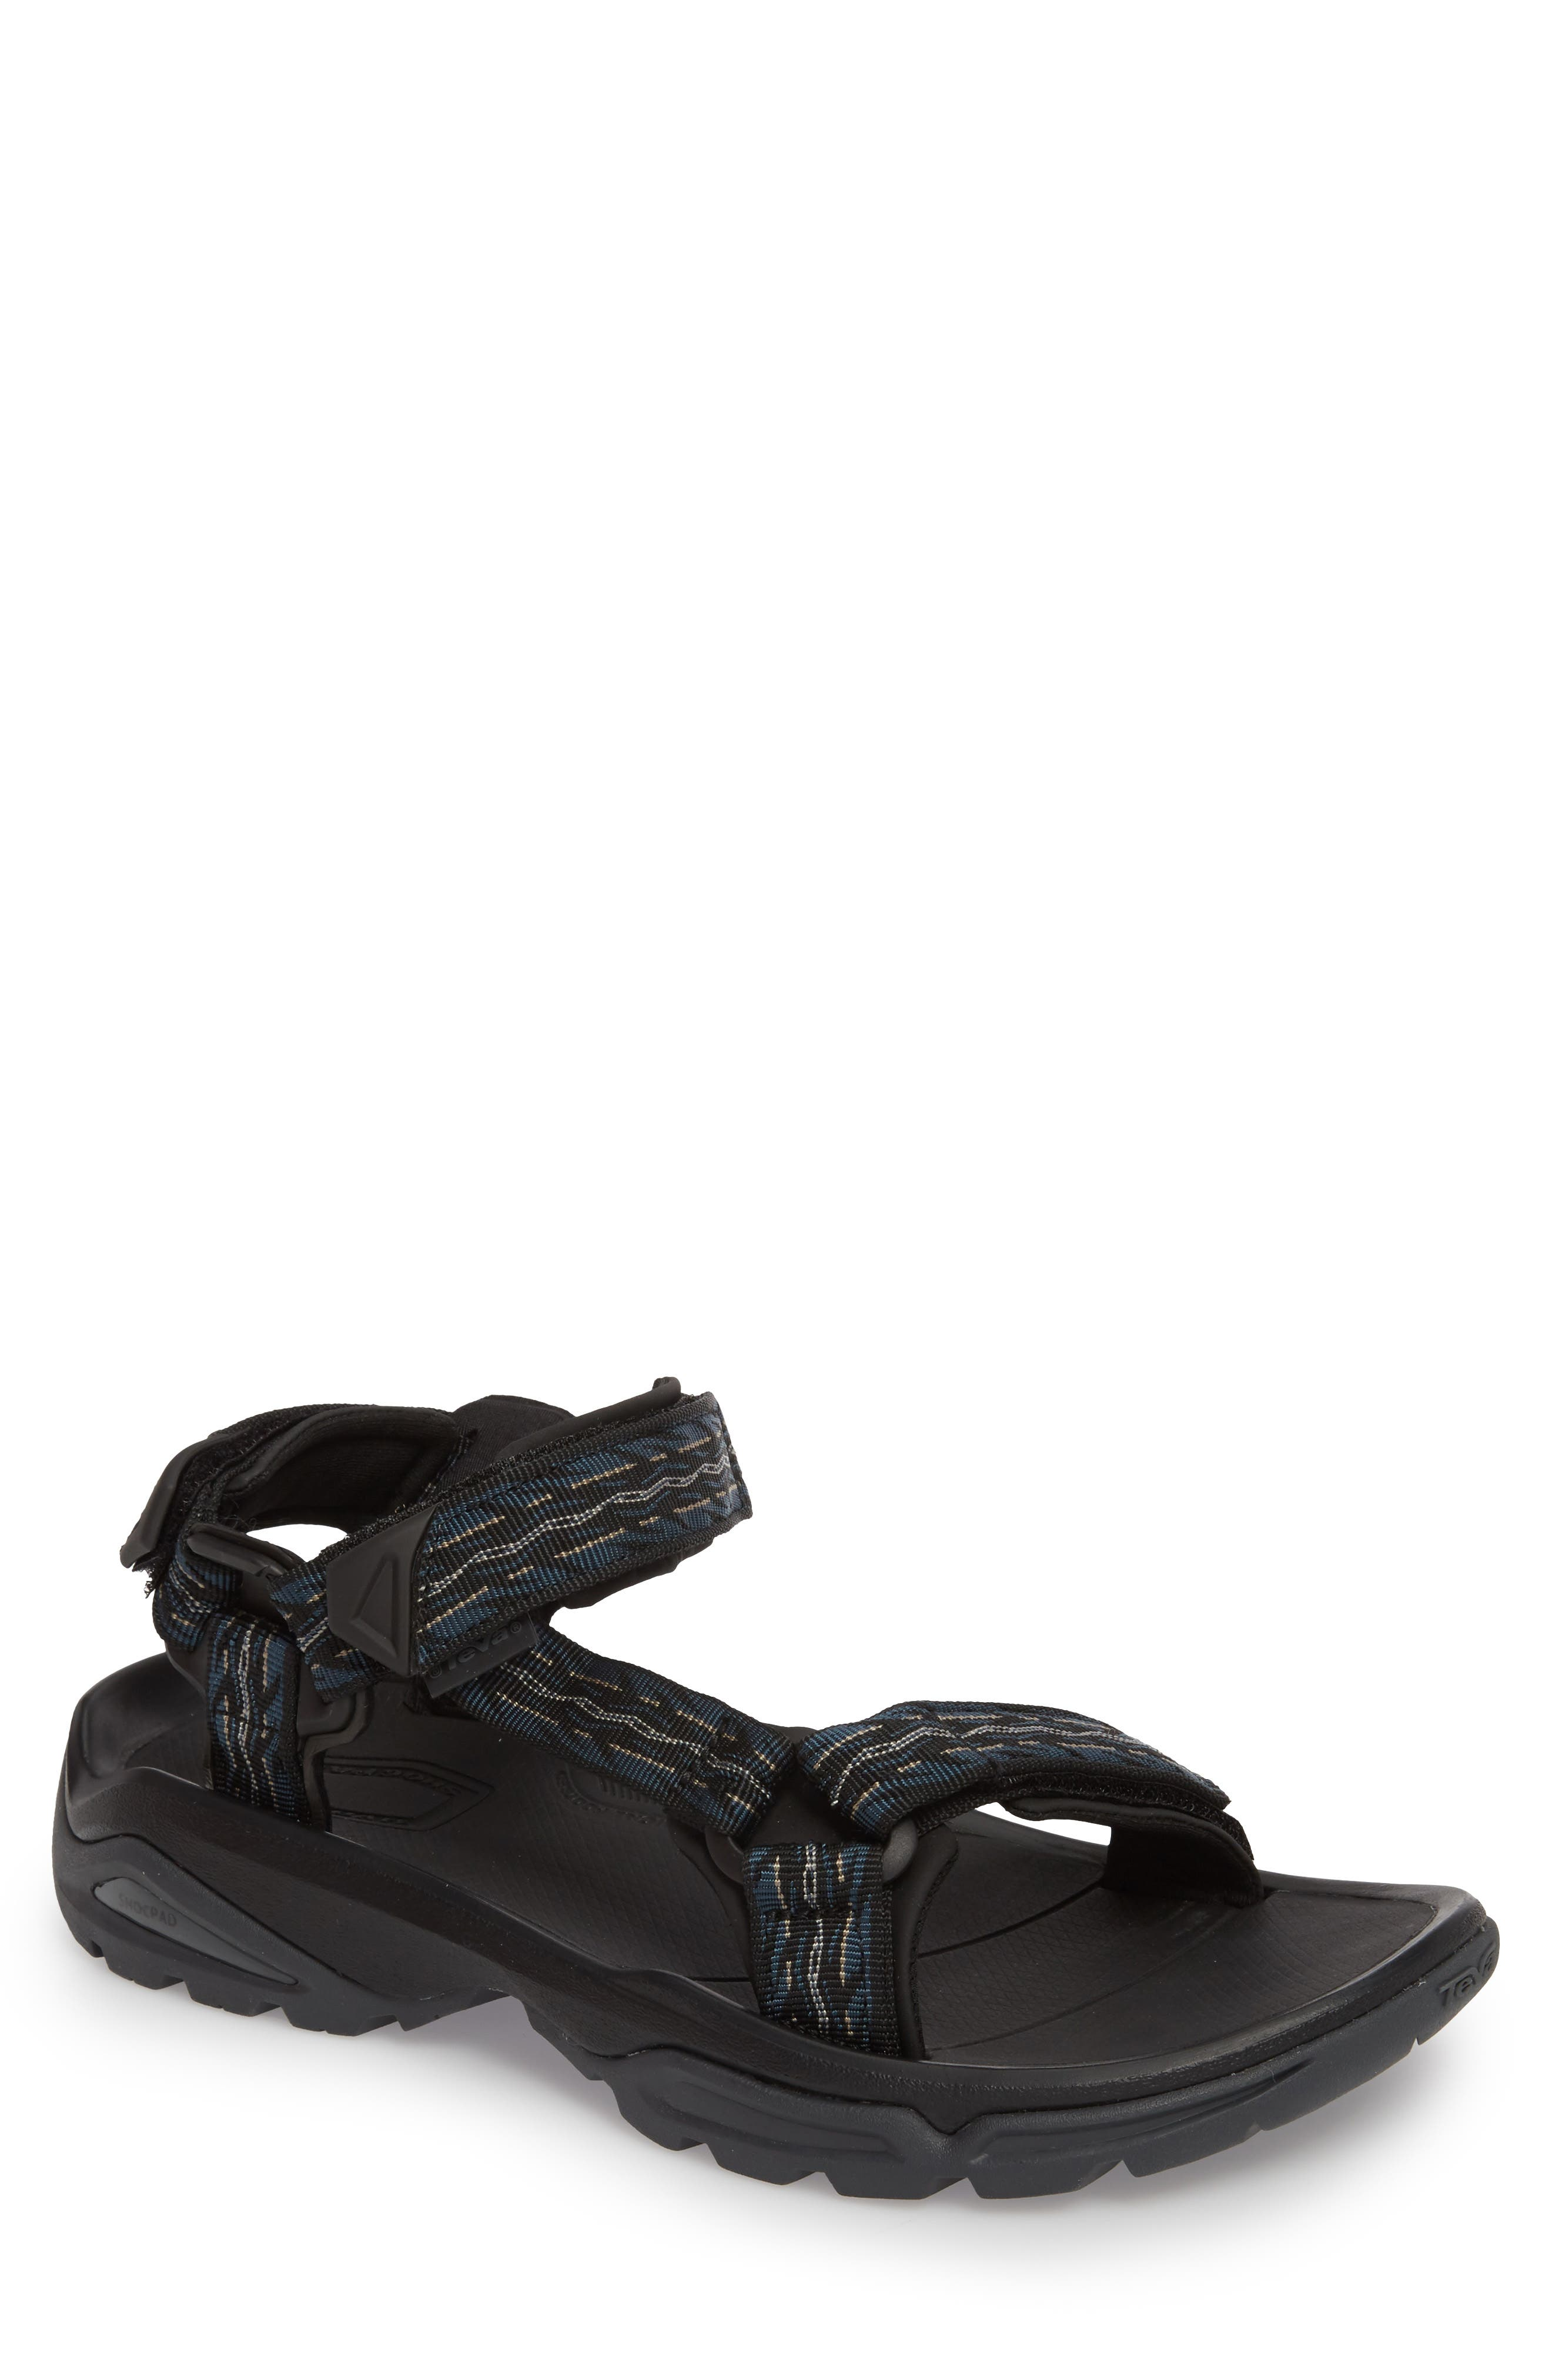 Terra Fi 4 Sport Sandal,                         Main,                         color, MIDNIGHT BLUE NYLON